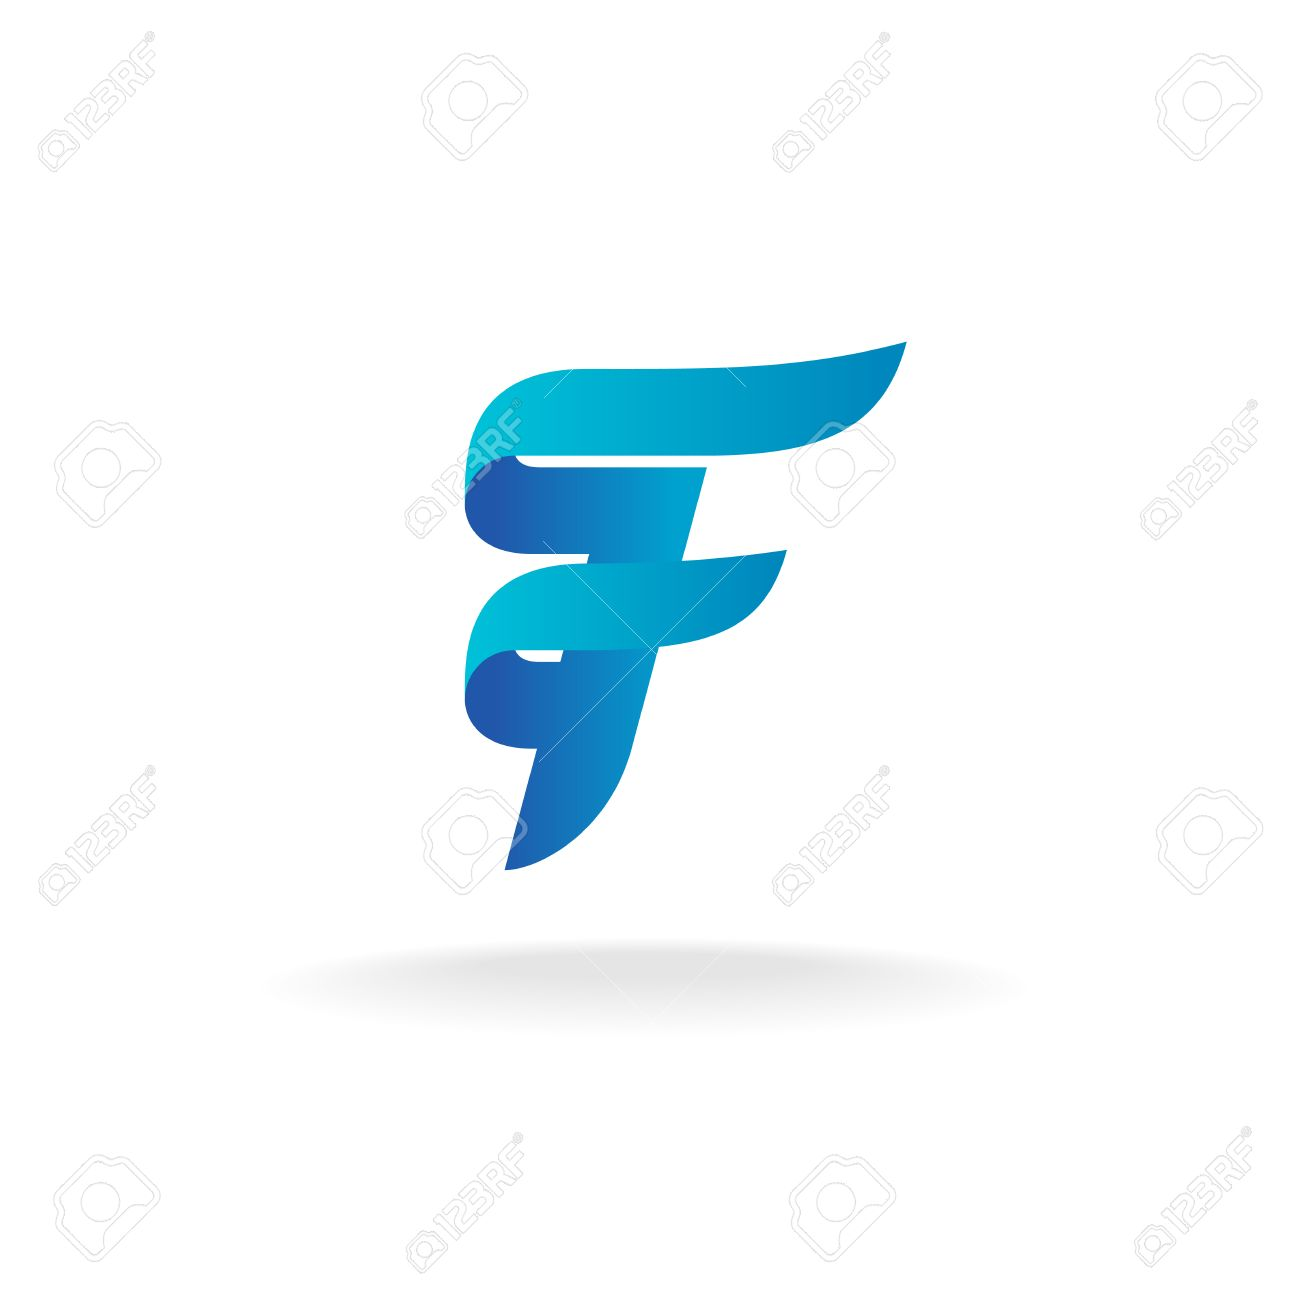 Letter F logo. Elegant smooth lines color ribbon style. Stock Vector -  47973091 aae668a1a101